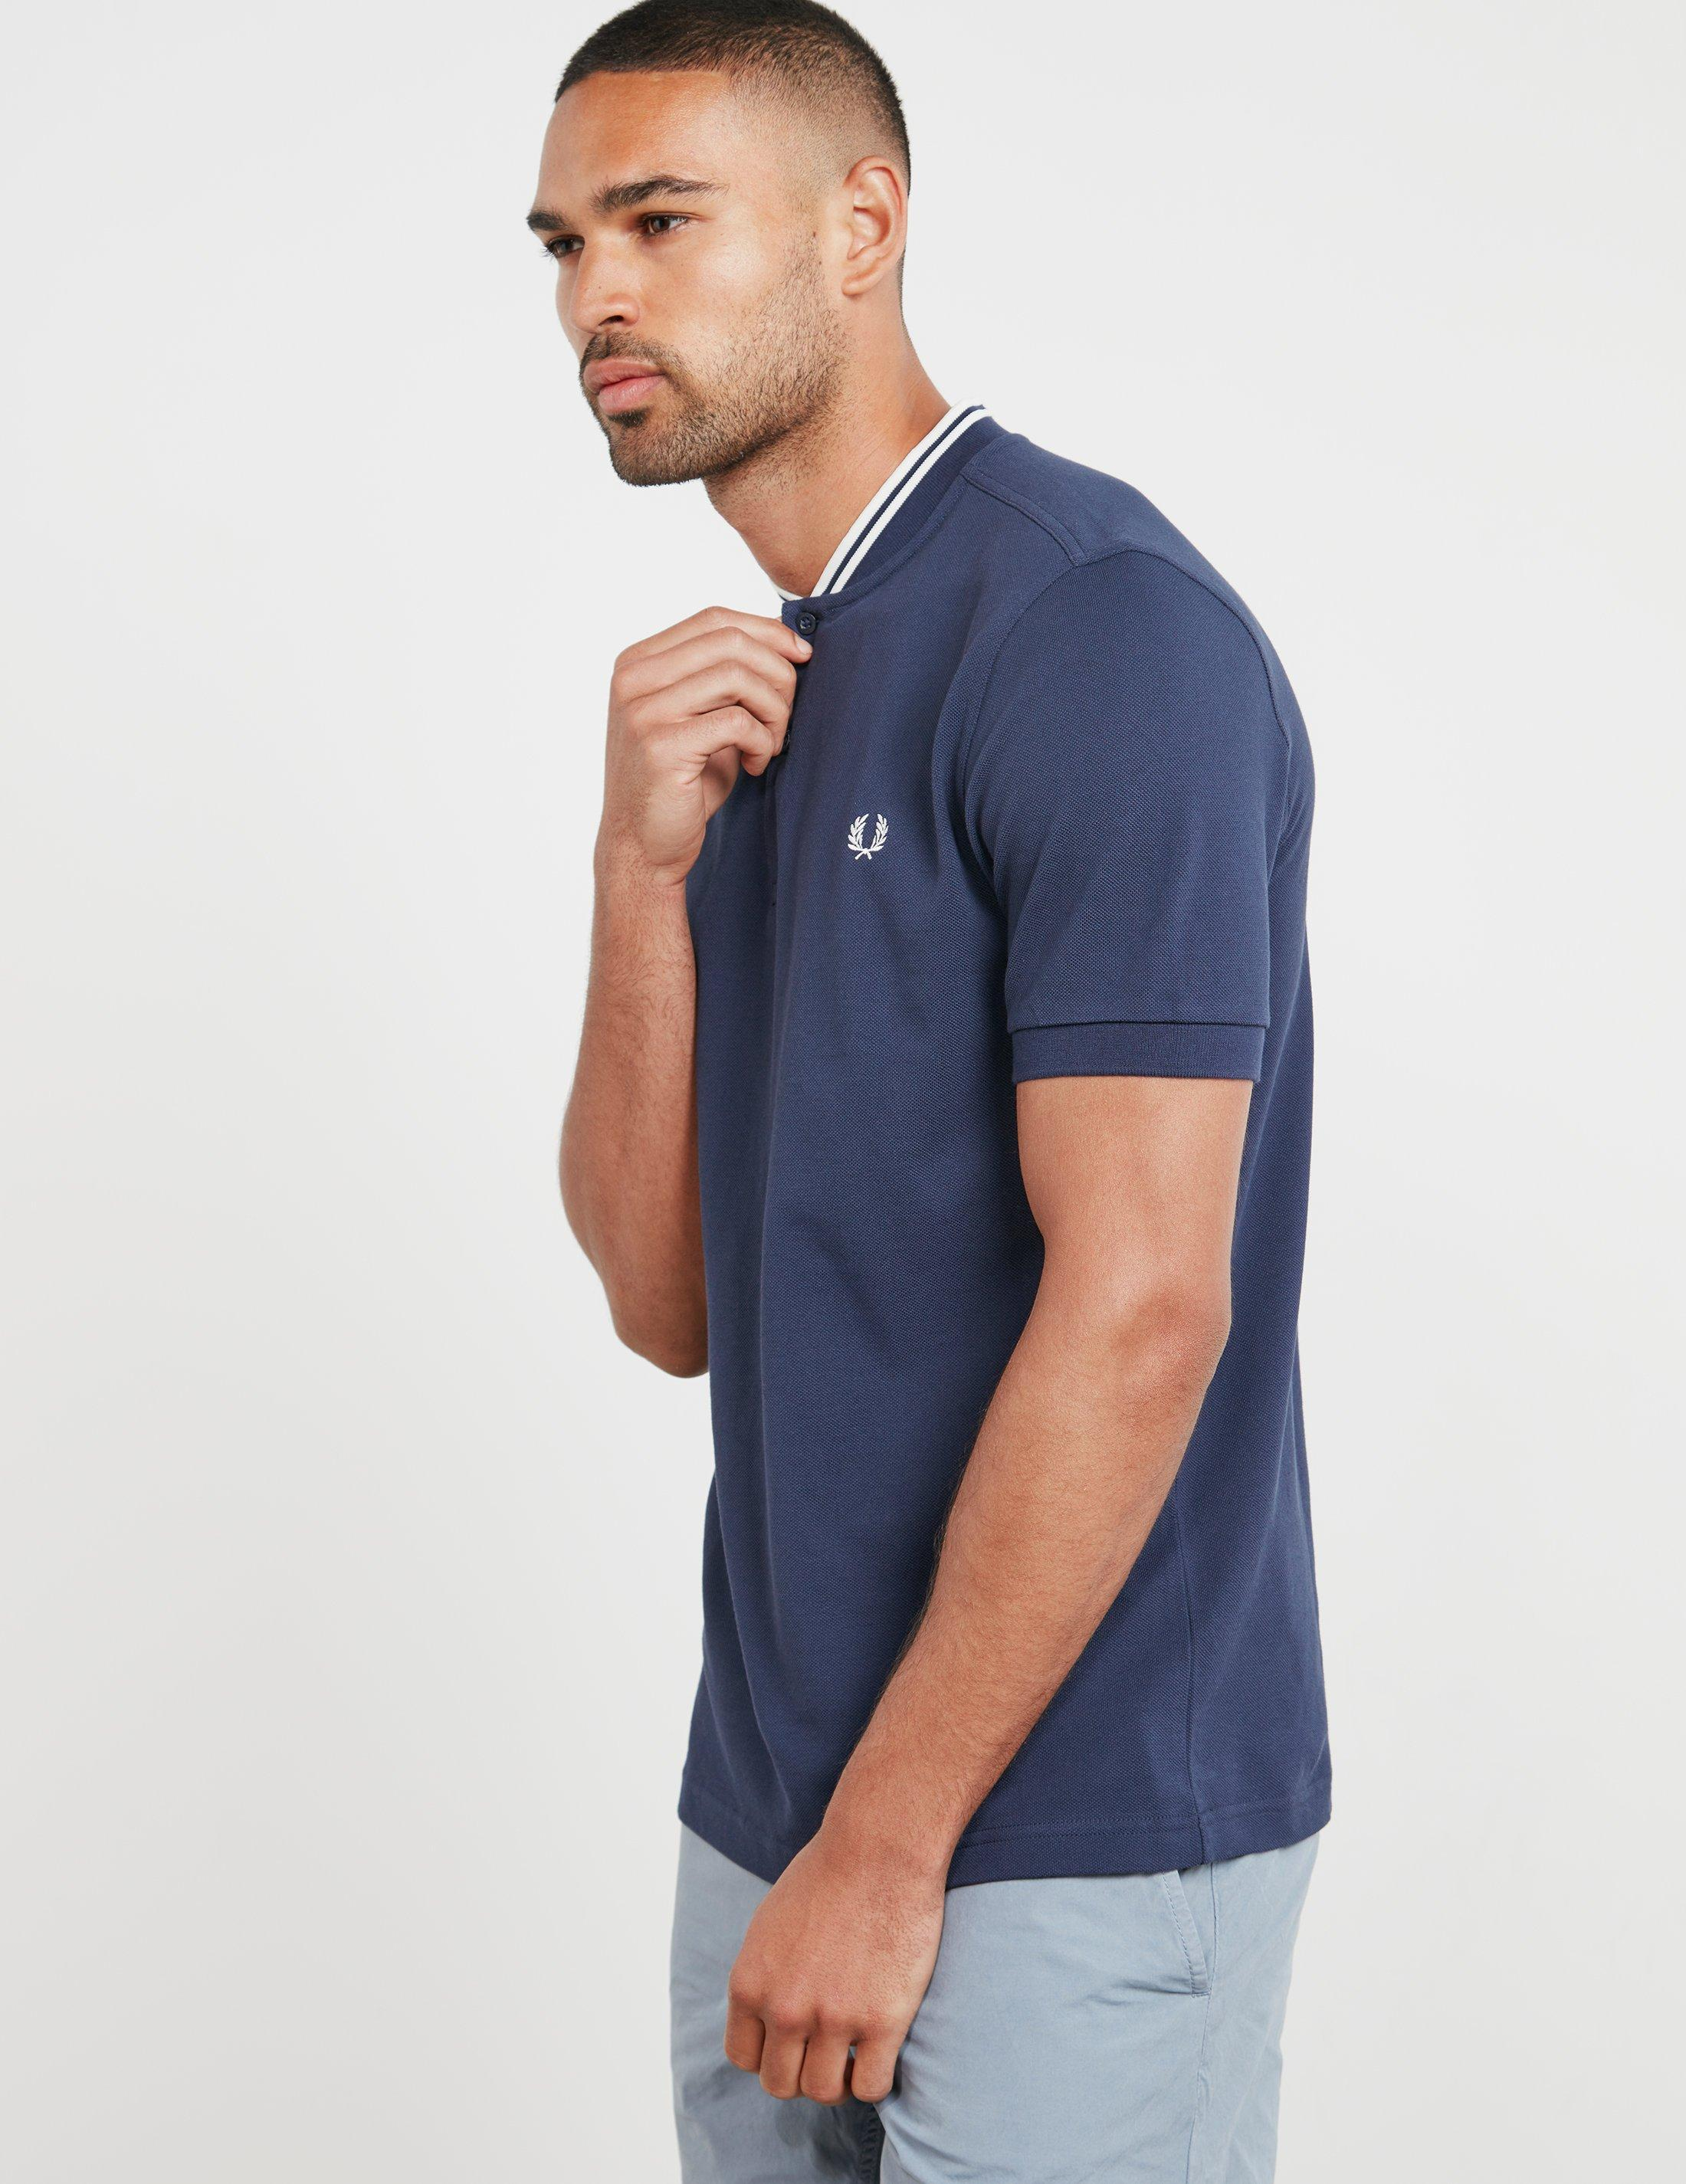 bddbb3ab Fred Perry Bomber Collar Short Sleeve Polo Shirt Navy Blue in Blue ...